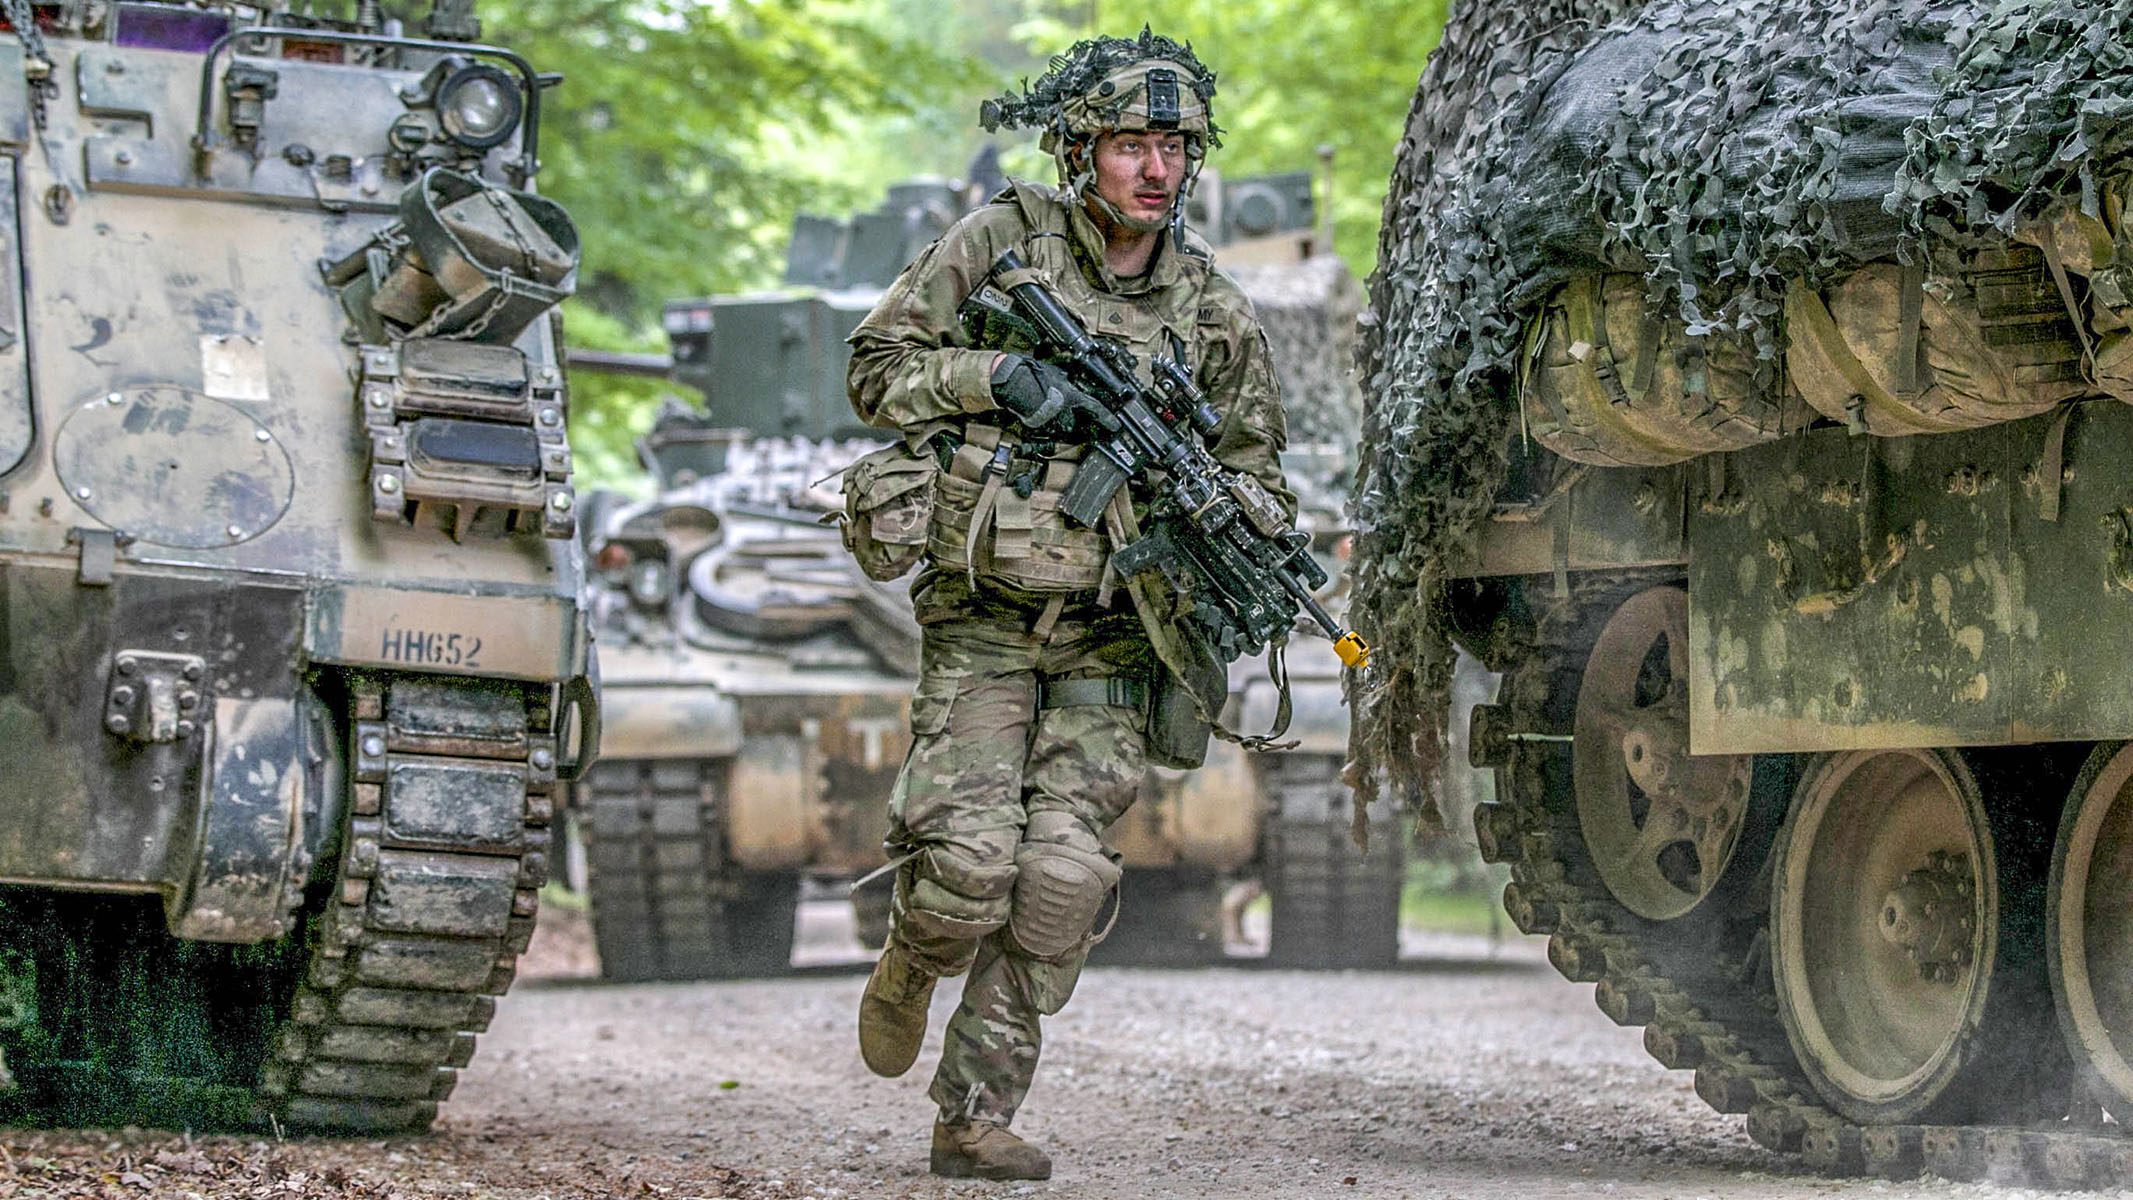 A Soldier assigned to 1st Battalion, 63rd Armor Regiment, 2nd Armored Brigade Combat Team, 1st Infantry Division, Fort Riley, Kansas, dismounts from a M2 Bradley fighting vehicle and rushes towards his defensive position during Combined Resolve X in Hohenfels Training Area, Germany, May 2, 2018. Exercise Combined Resolve X is an U.S. Army Europe exercise series held twice a year in southeastern Germany to prepare forces in Europe to work together to promote stability and security in the region. (Spc. Dustin D. Biven / Army)